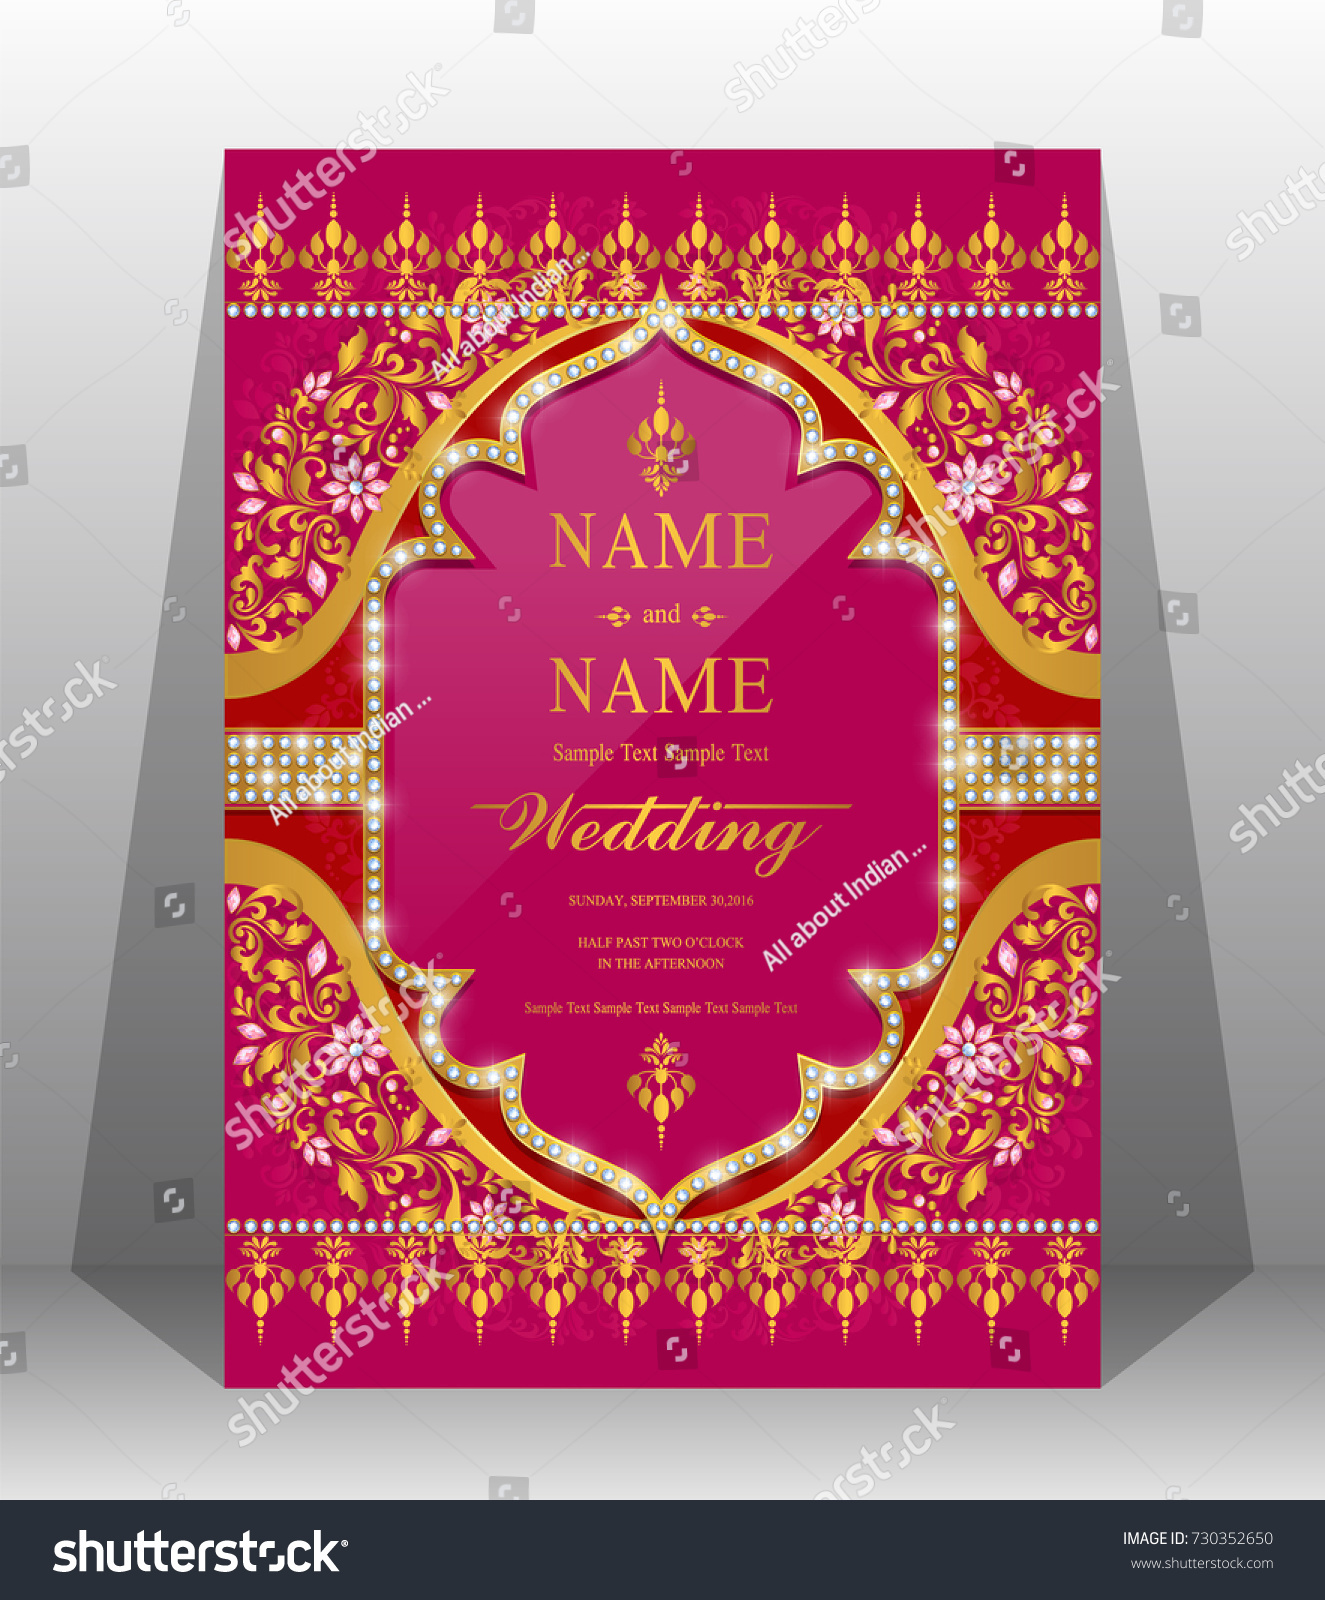 Indian Wedding Invitation Card Templates Gold Backgrounds